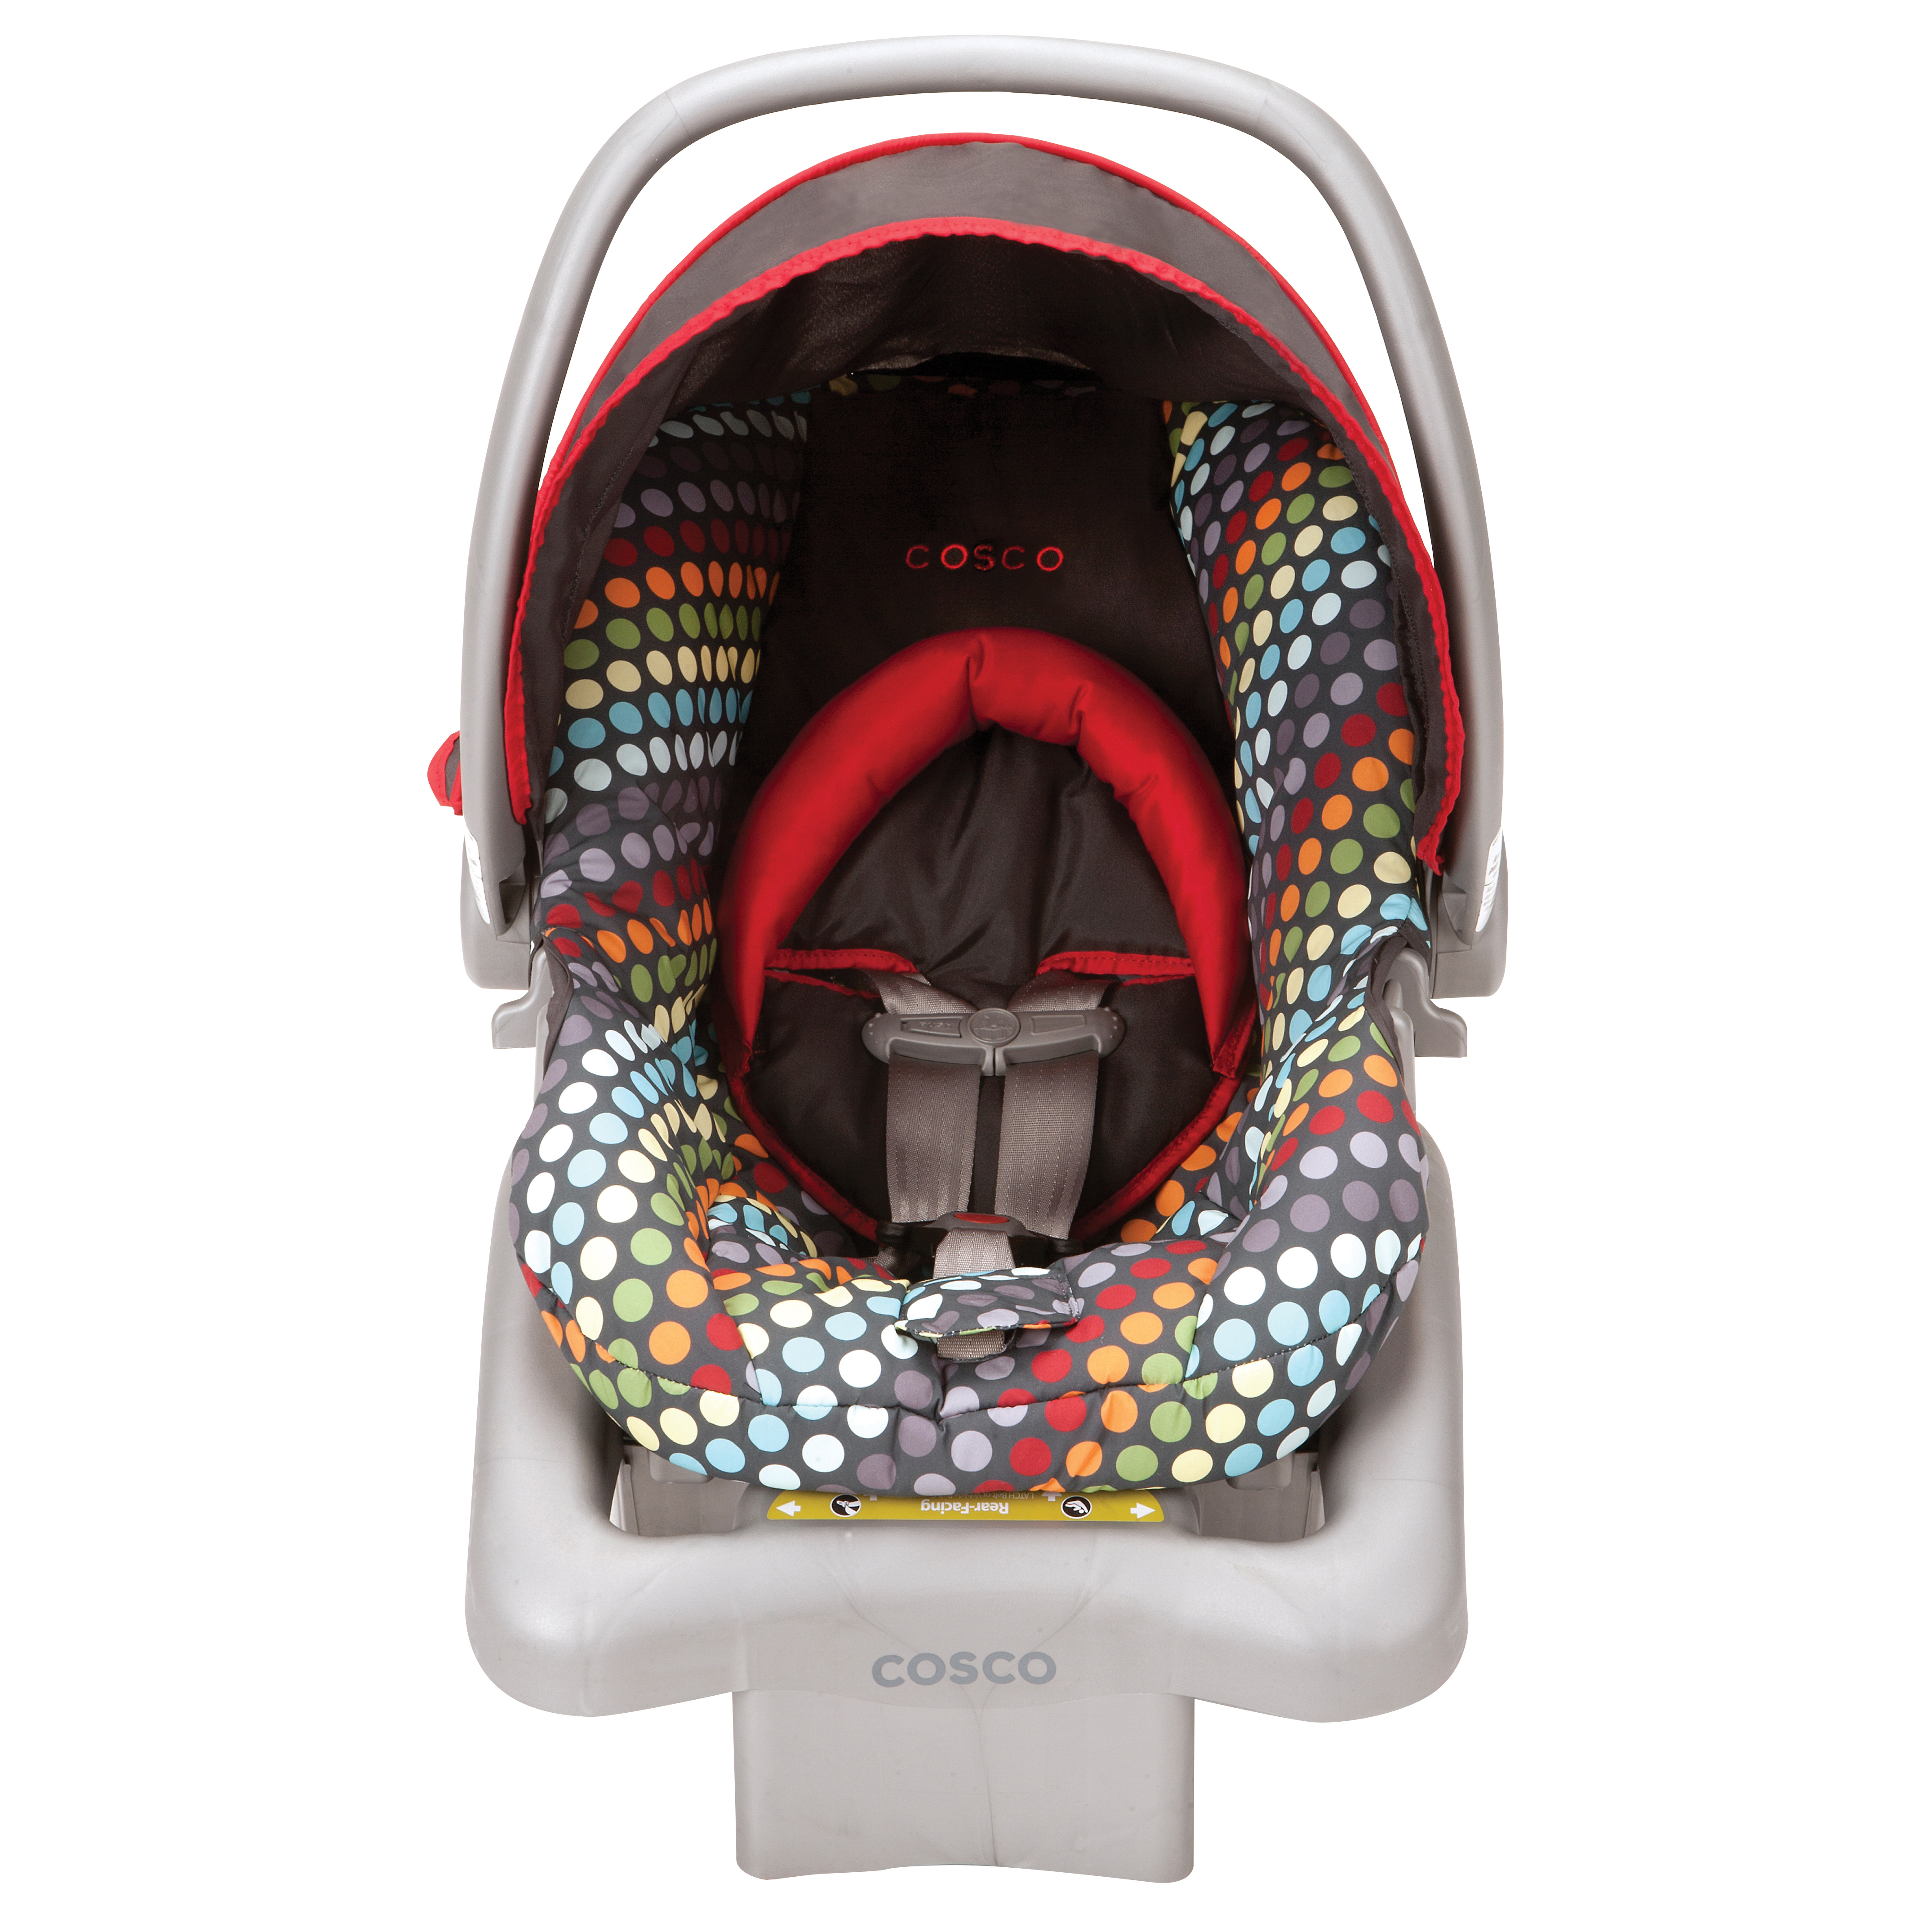 Cosco Light N Comfy DX Baby Infant Car Seat